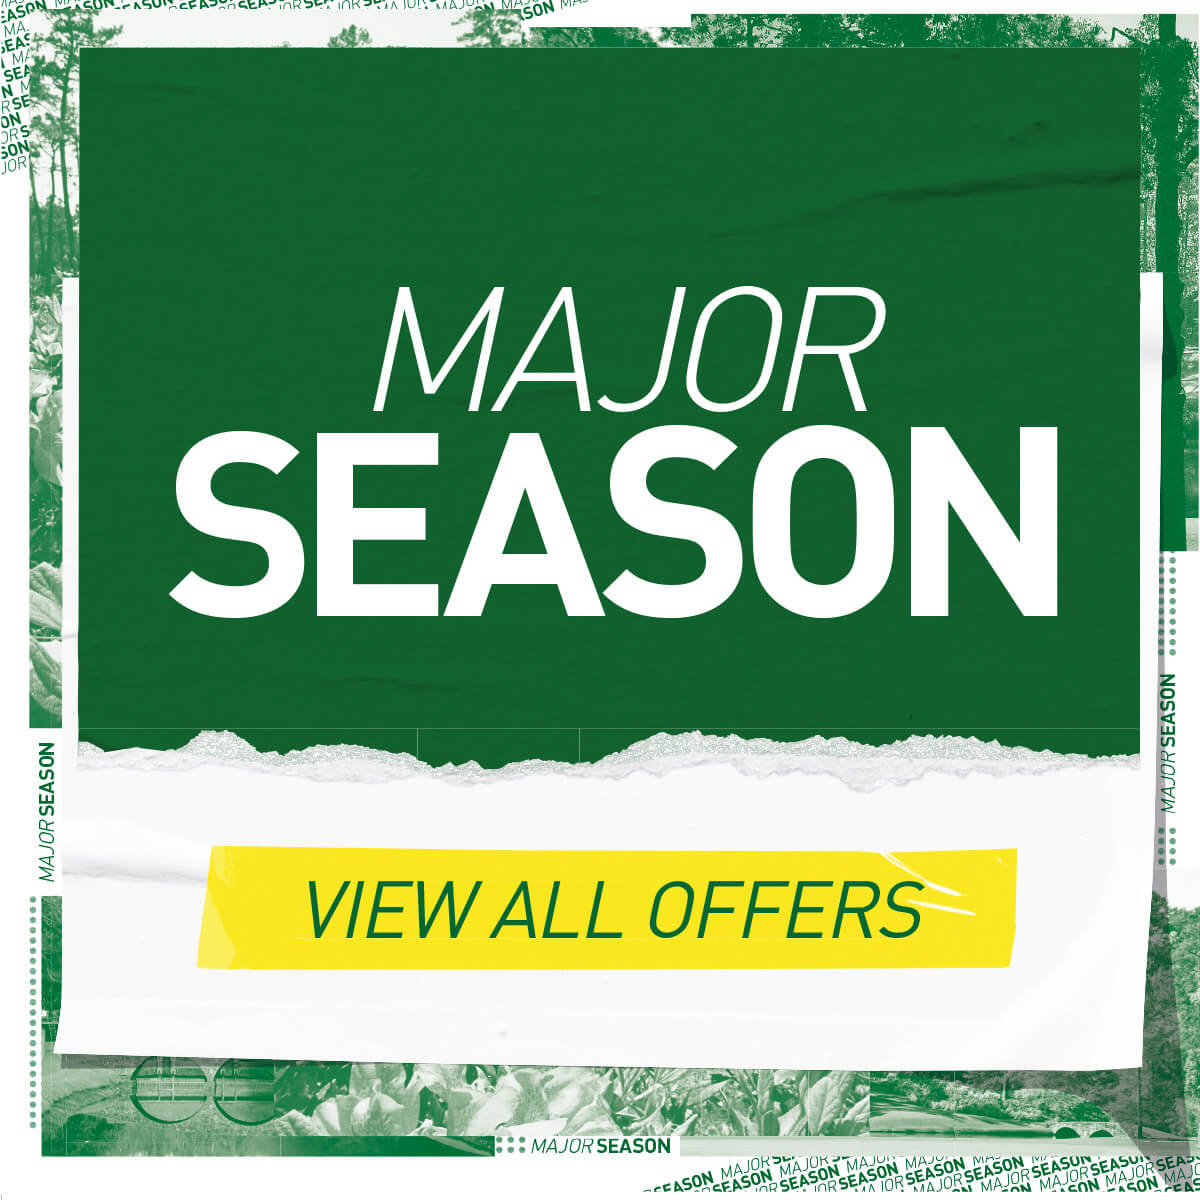 Major Season offers